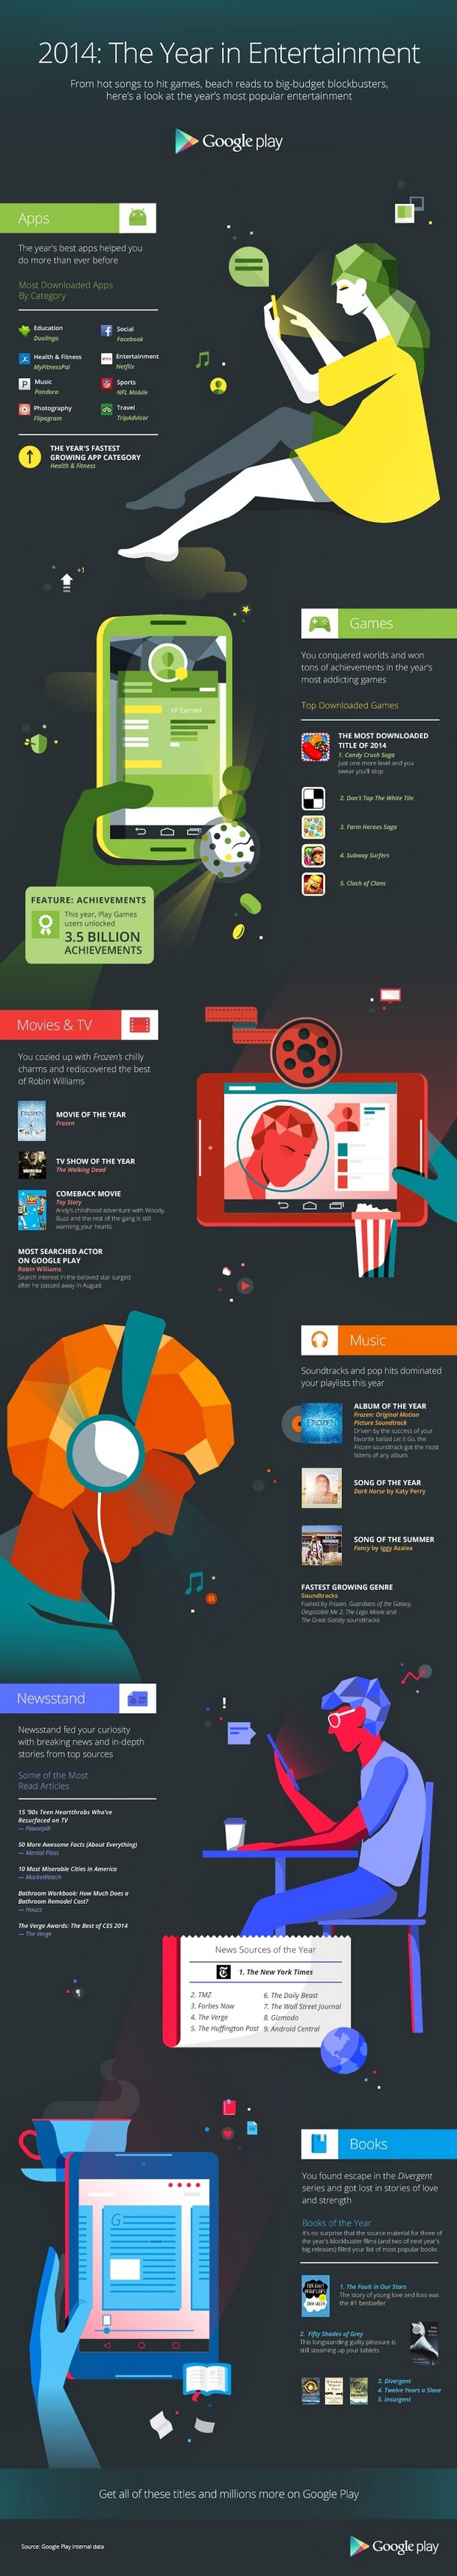 google-play-entertainment-2014-review